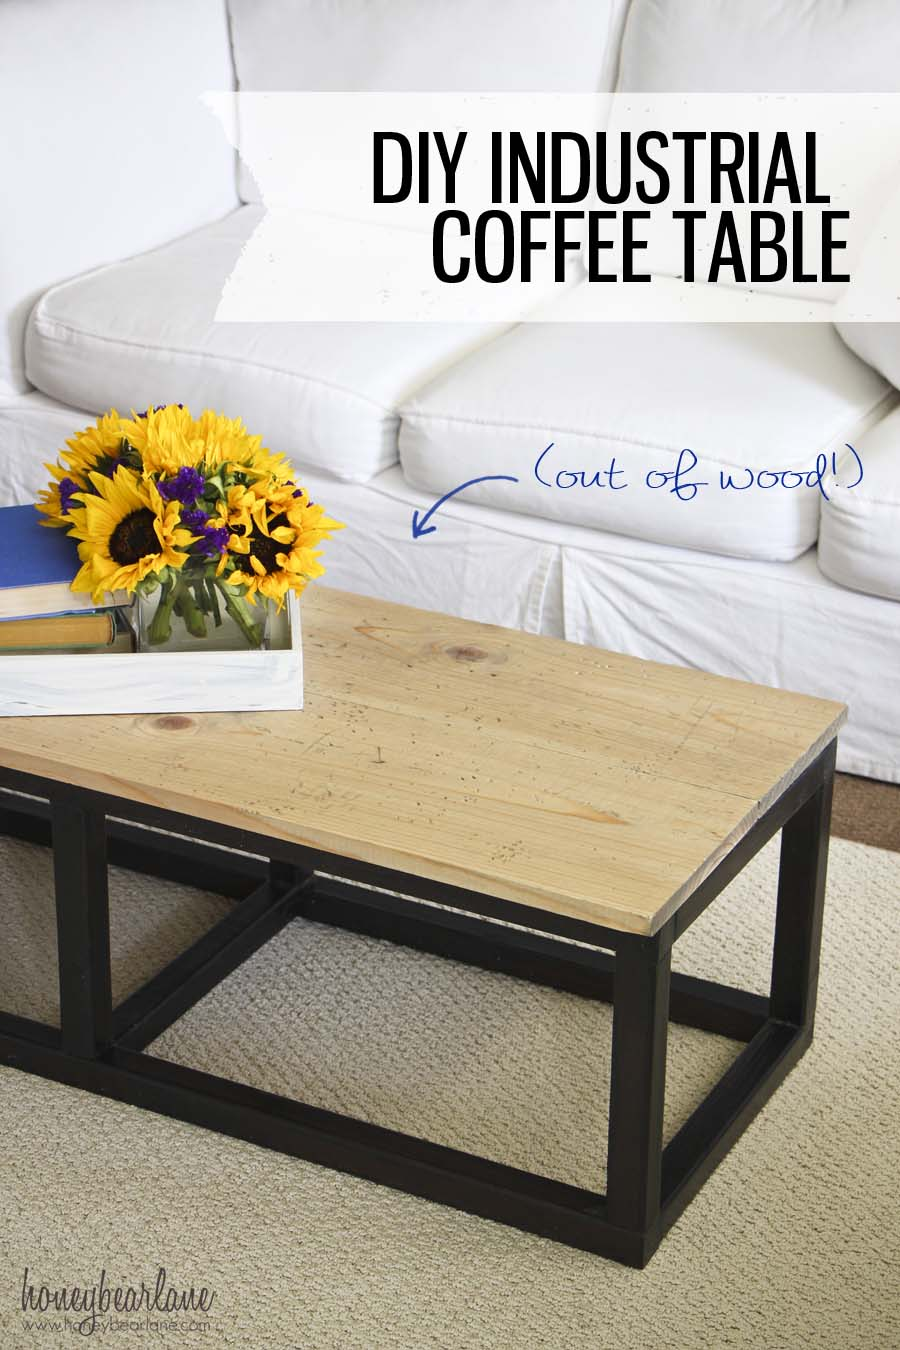 Diy industrial coffee table amp giveaway honeybear lane